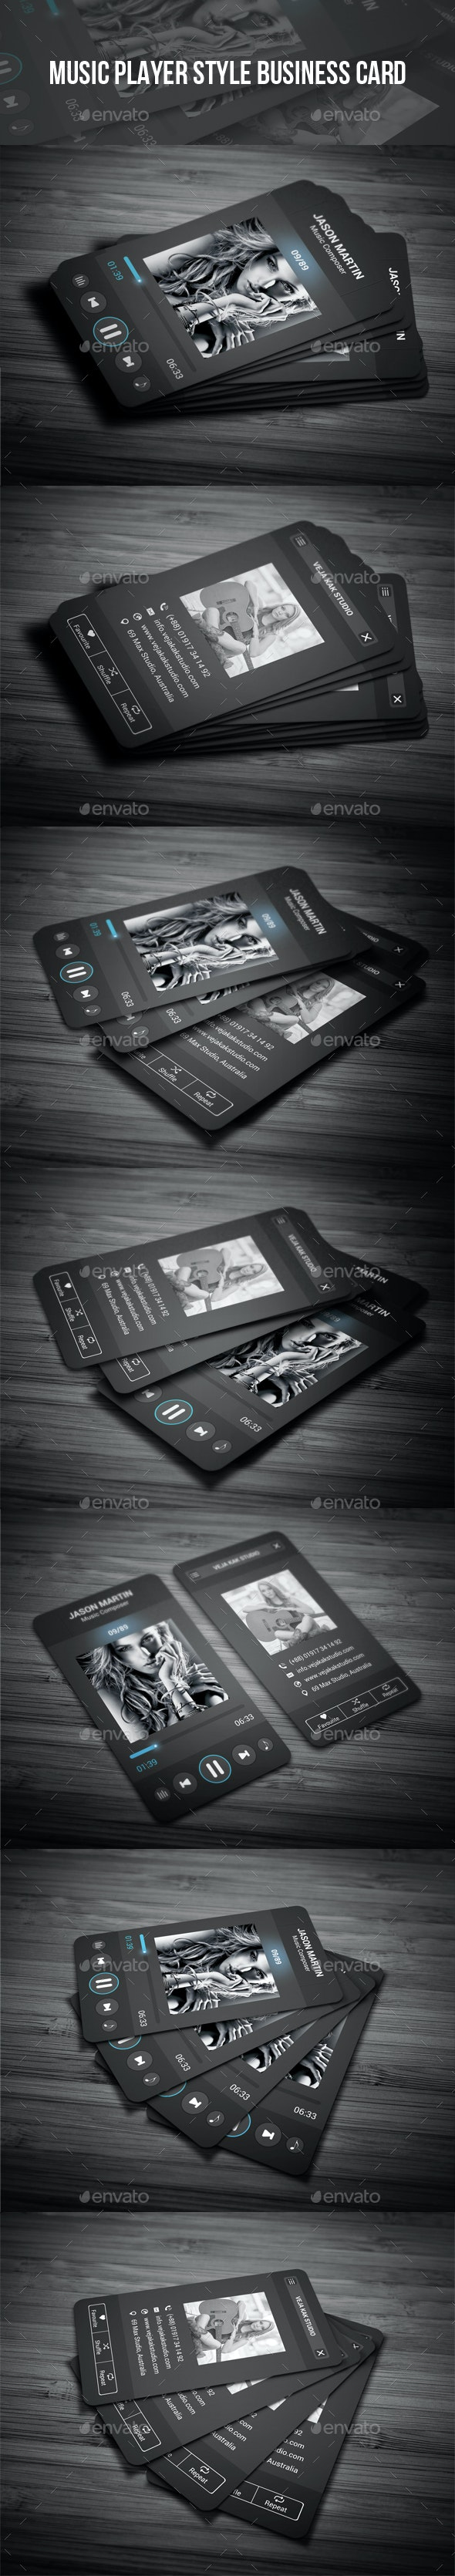 Music Player Style Business Card - Creative Business Cards